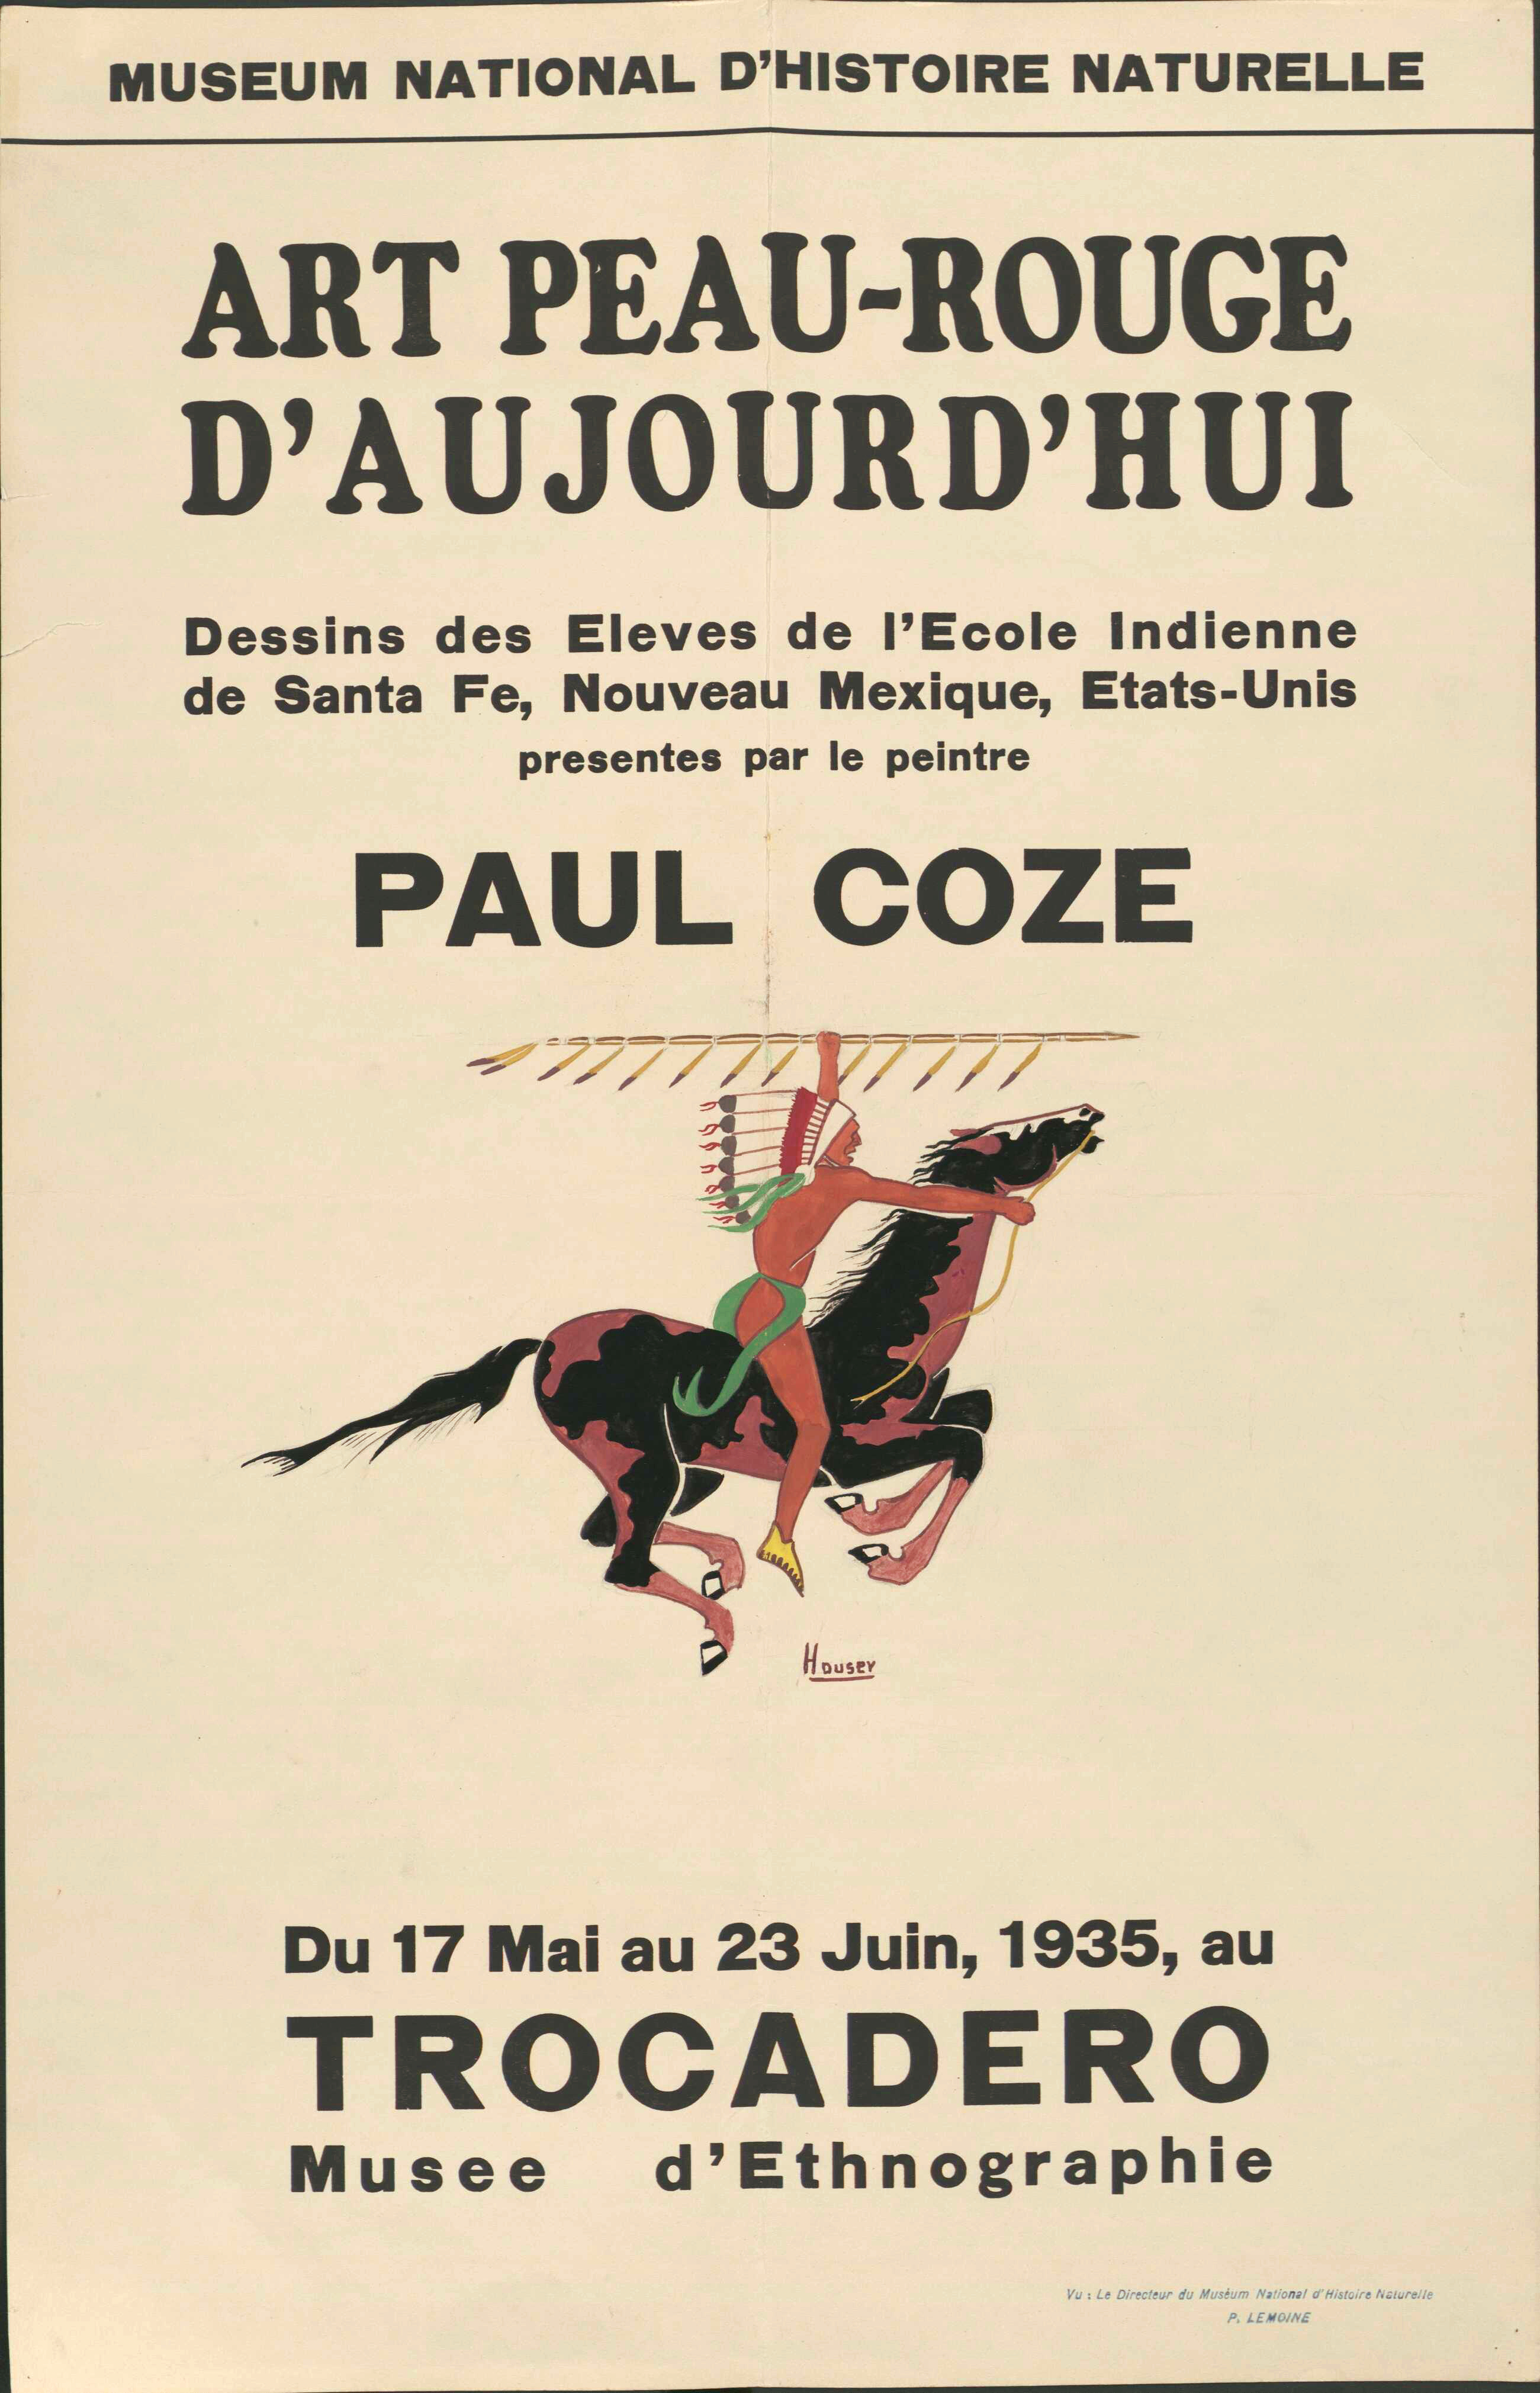 Art Exhibition Poster with Painting of a figure in war bonnet on horseback holding feathered spear.